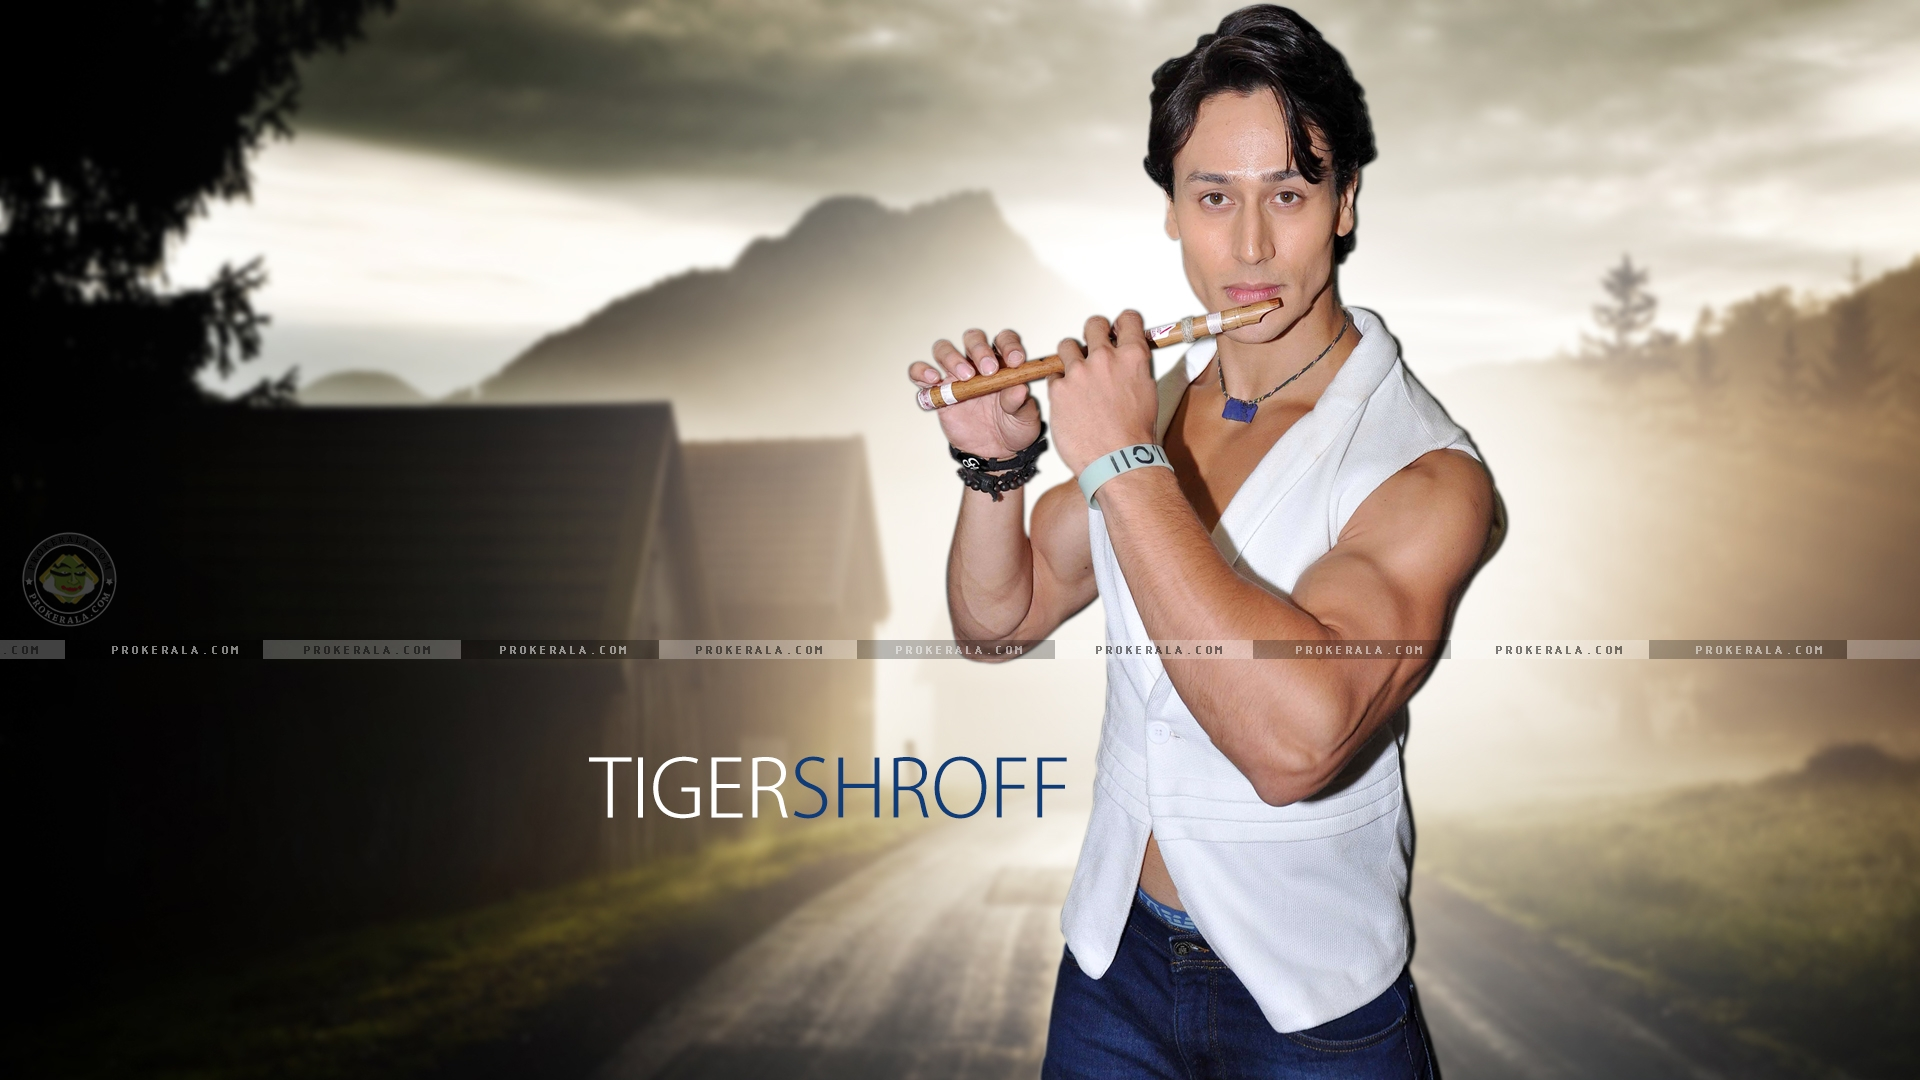 tiger shroff hd wallpaper for download